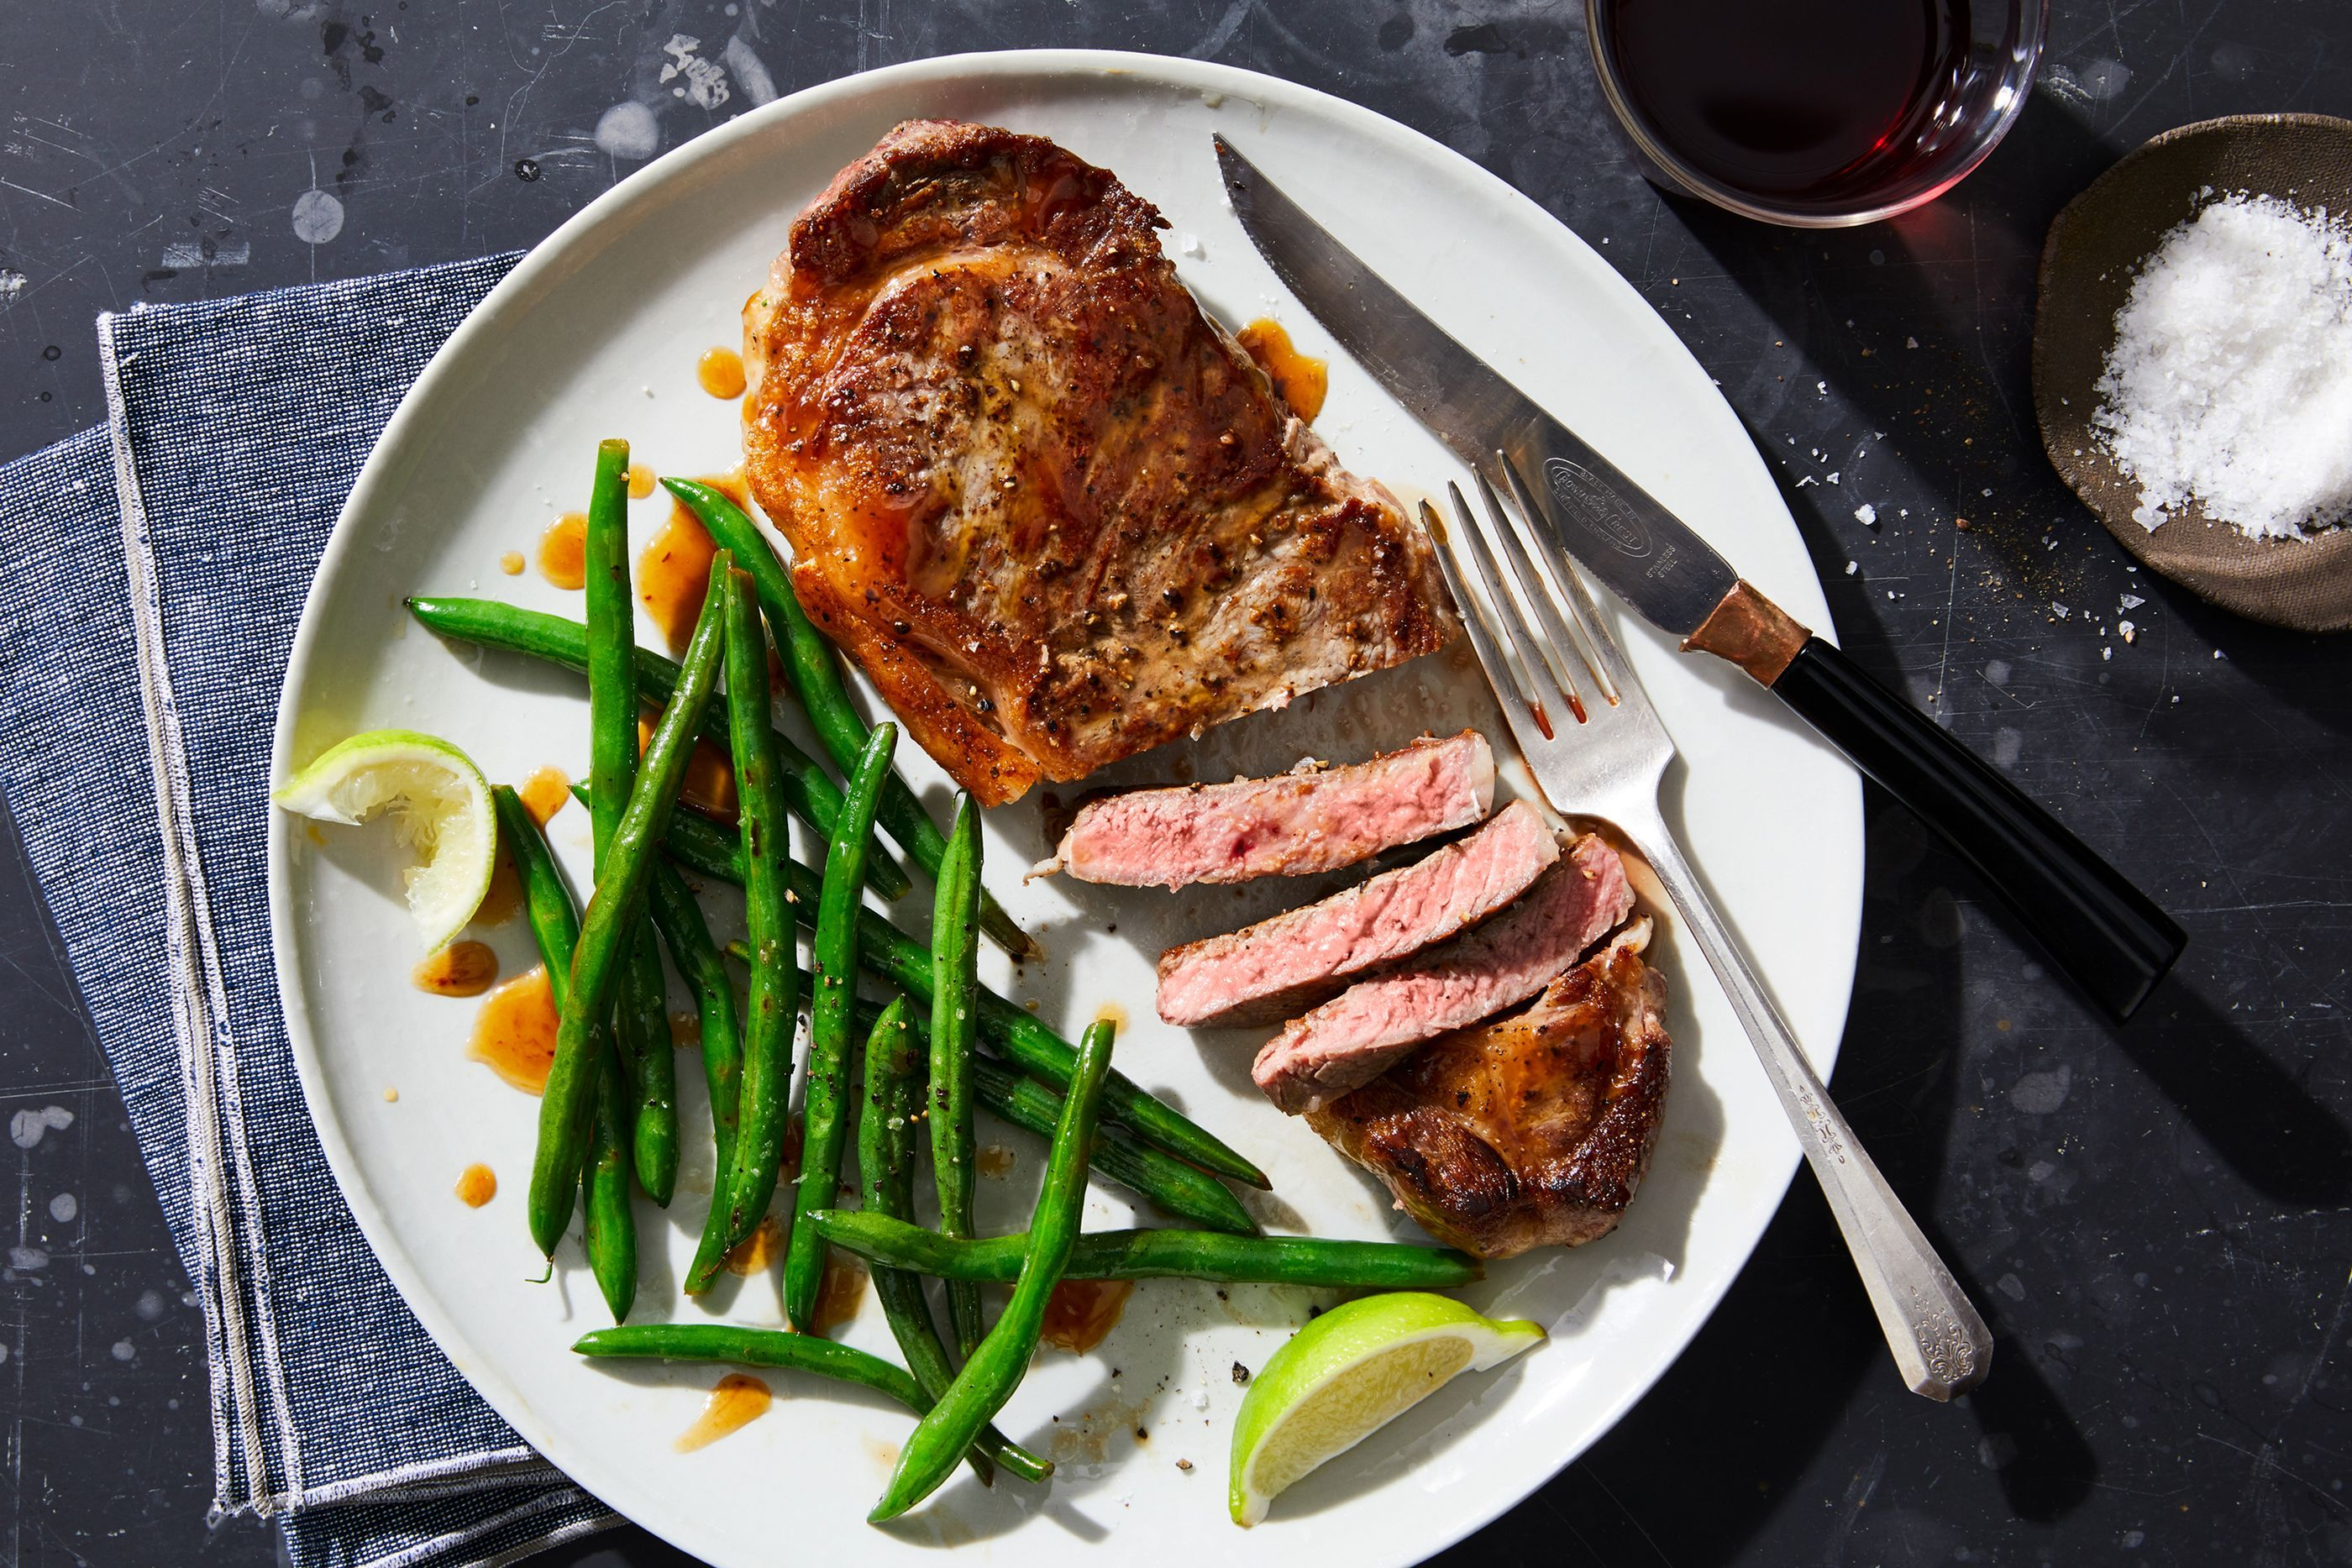 A 5-Minute Steak Dinner for One—for Those Nights When You Just Can't